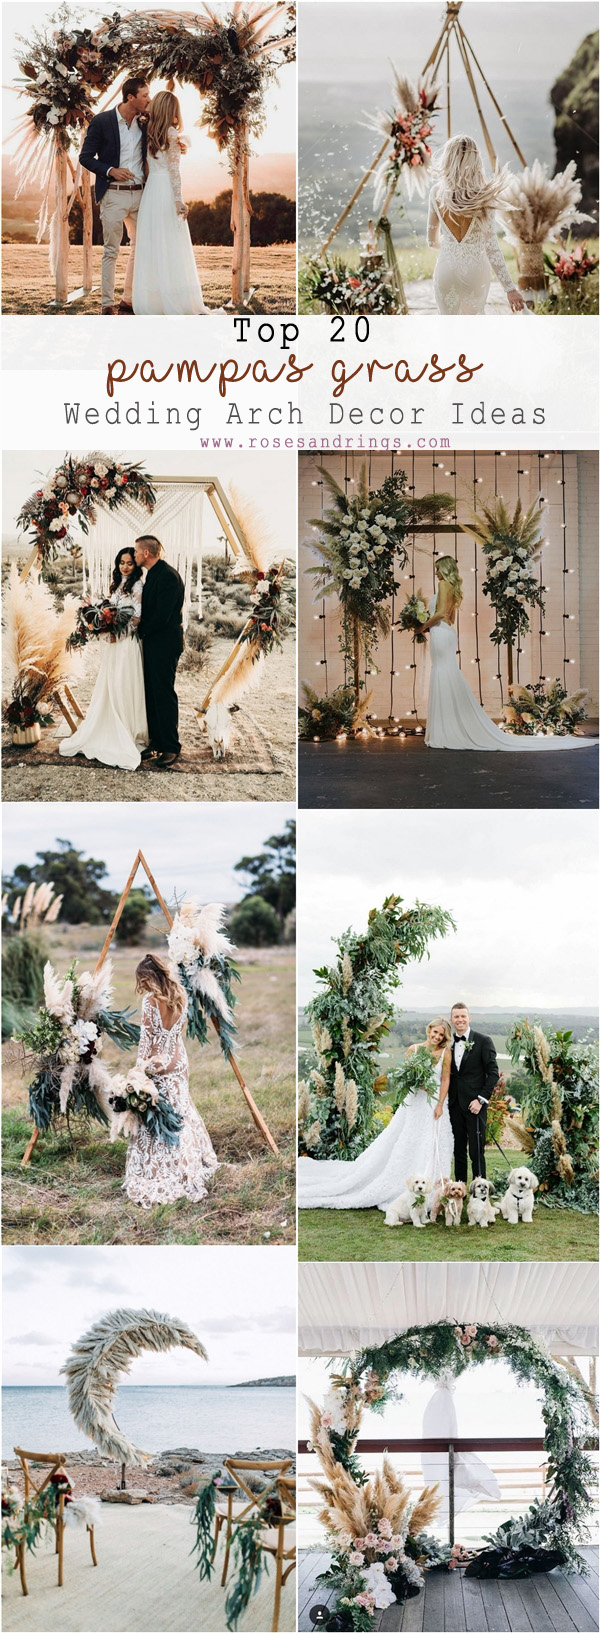 romantic boho pampas grass wedding arch ideas